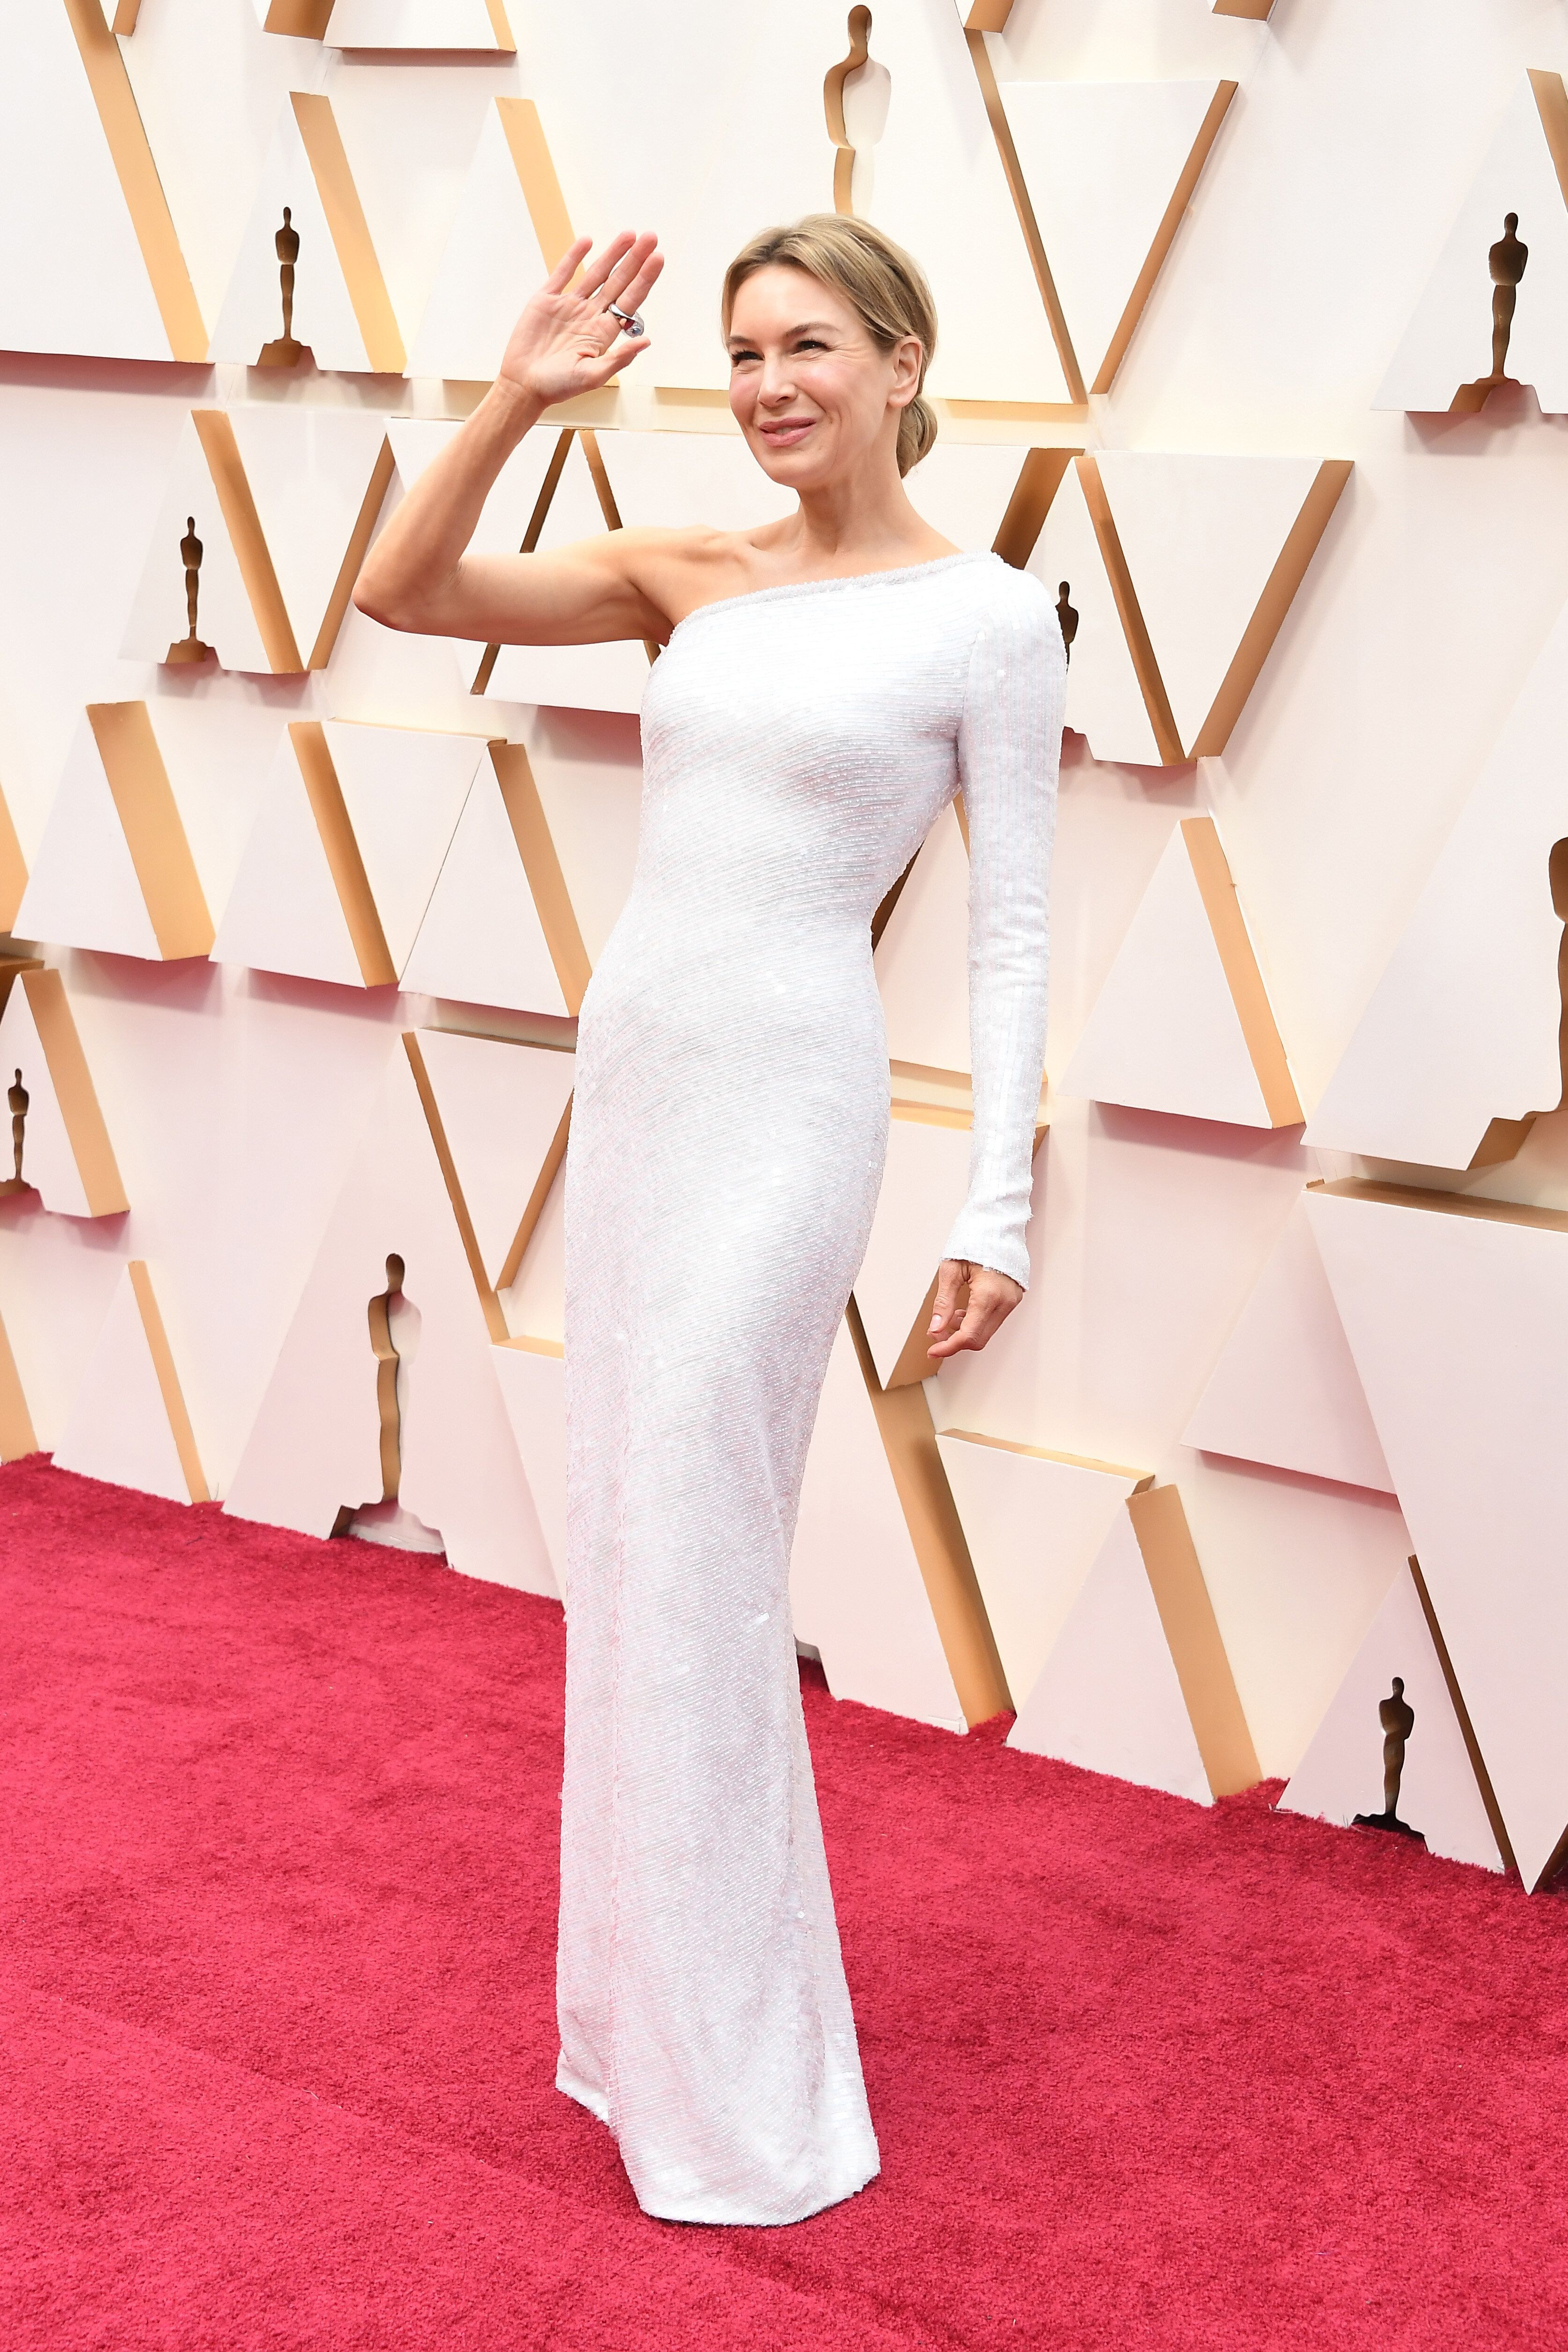 Zellweger walks the red carpet at the 2020 Oscars in Hollywood, California.